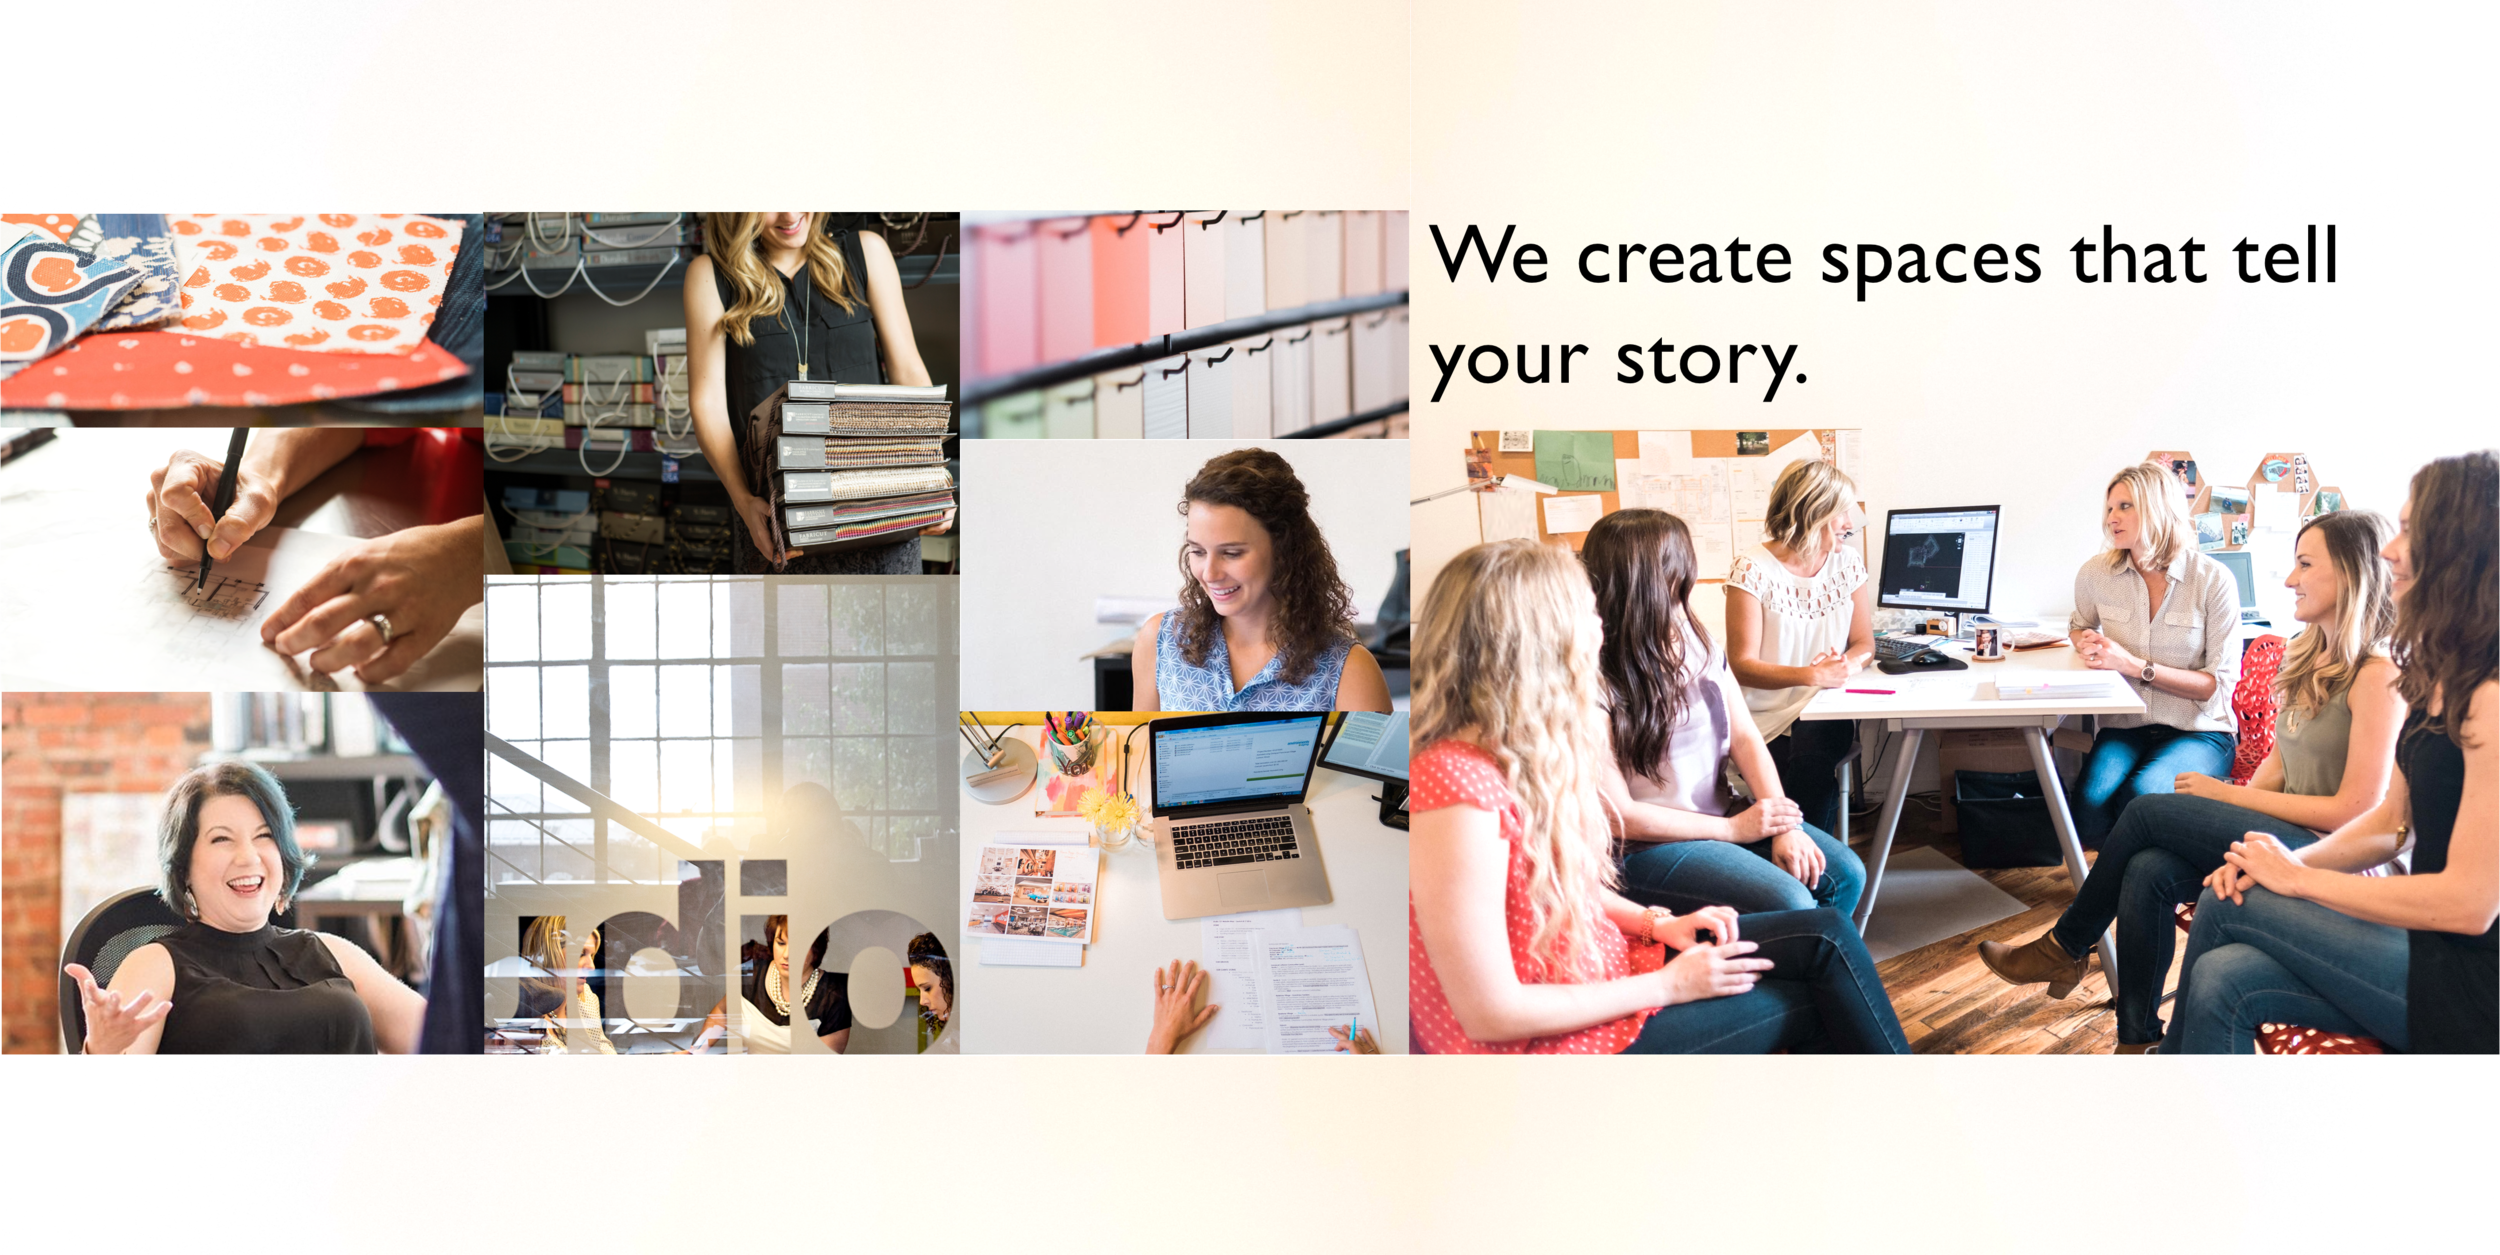 studio121_we_create_spaces_that_tell_your_story_1.png